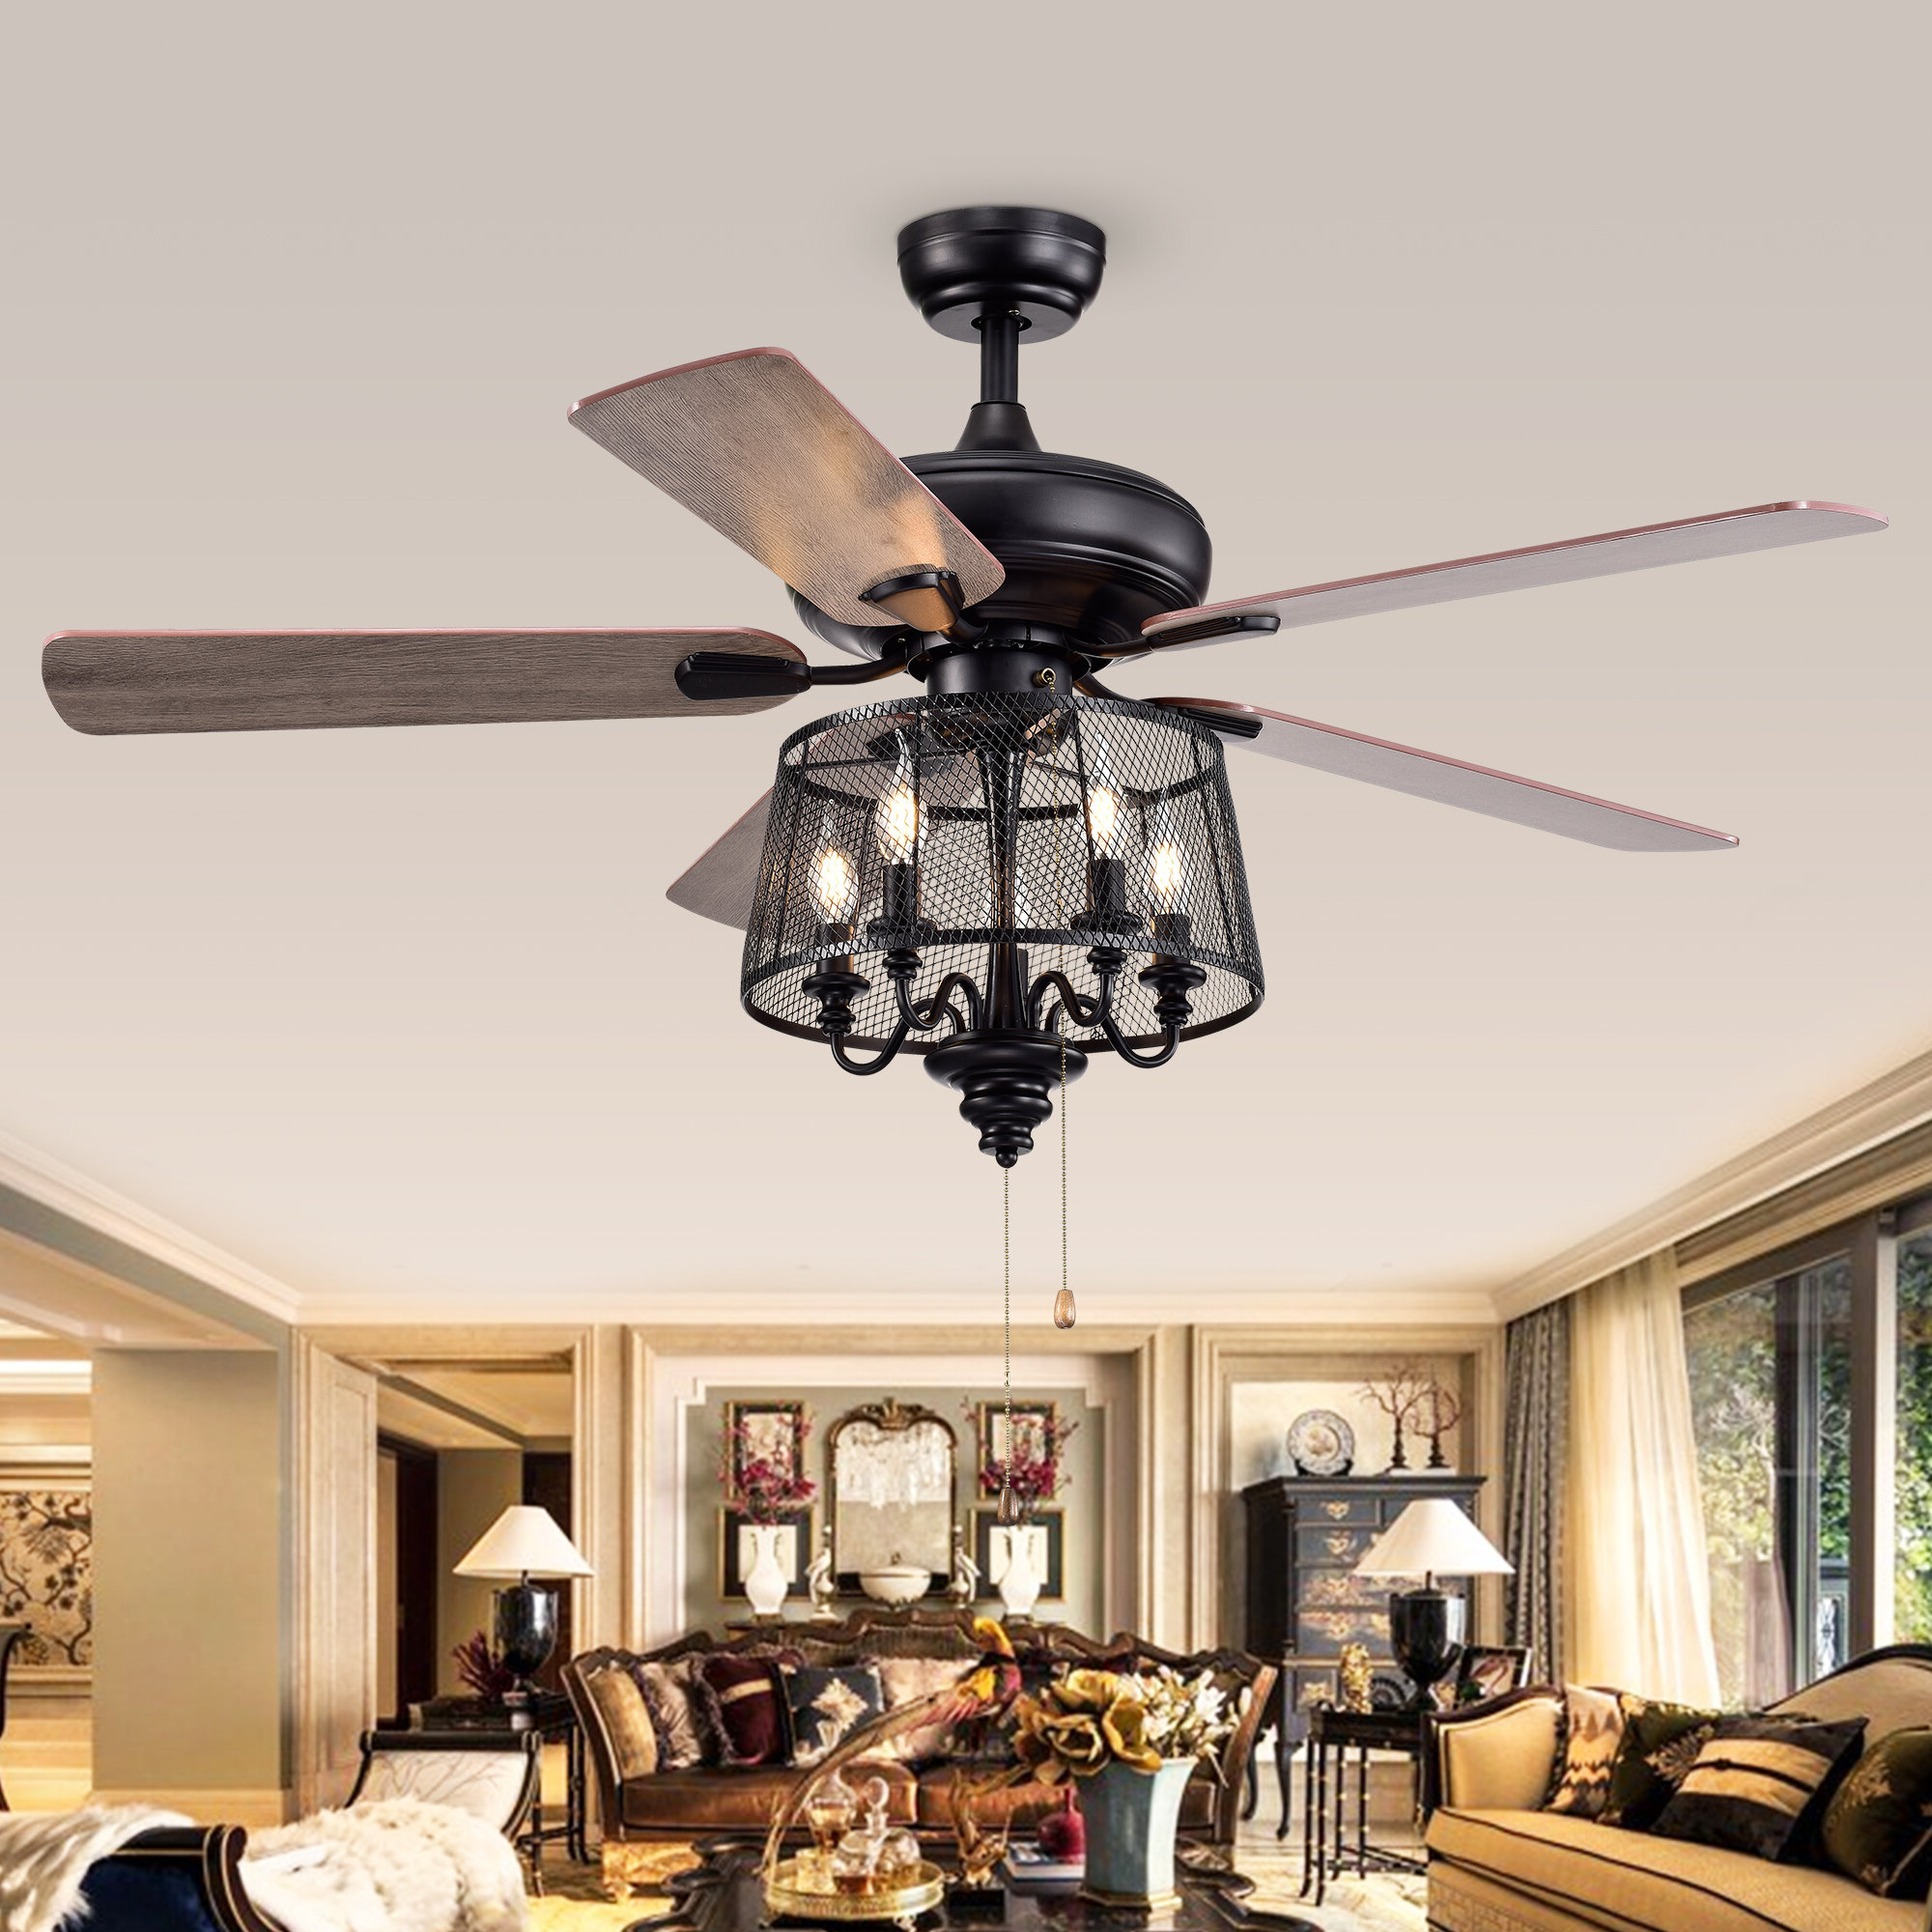 2019 Croteau 5 Blade Ceiling Fan, Light Kit Included Regarding Njie Caged Crystal 5 Blade Ceiling Fans (View 10 of 20)